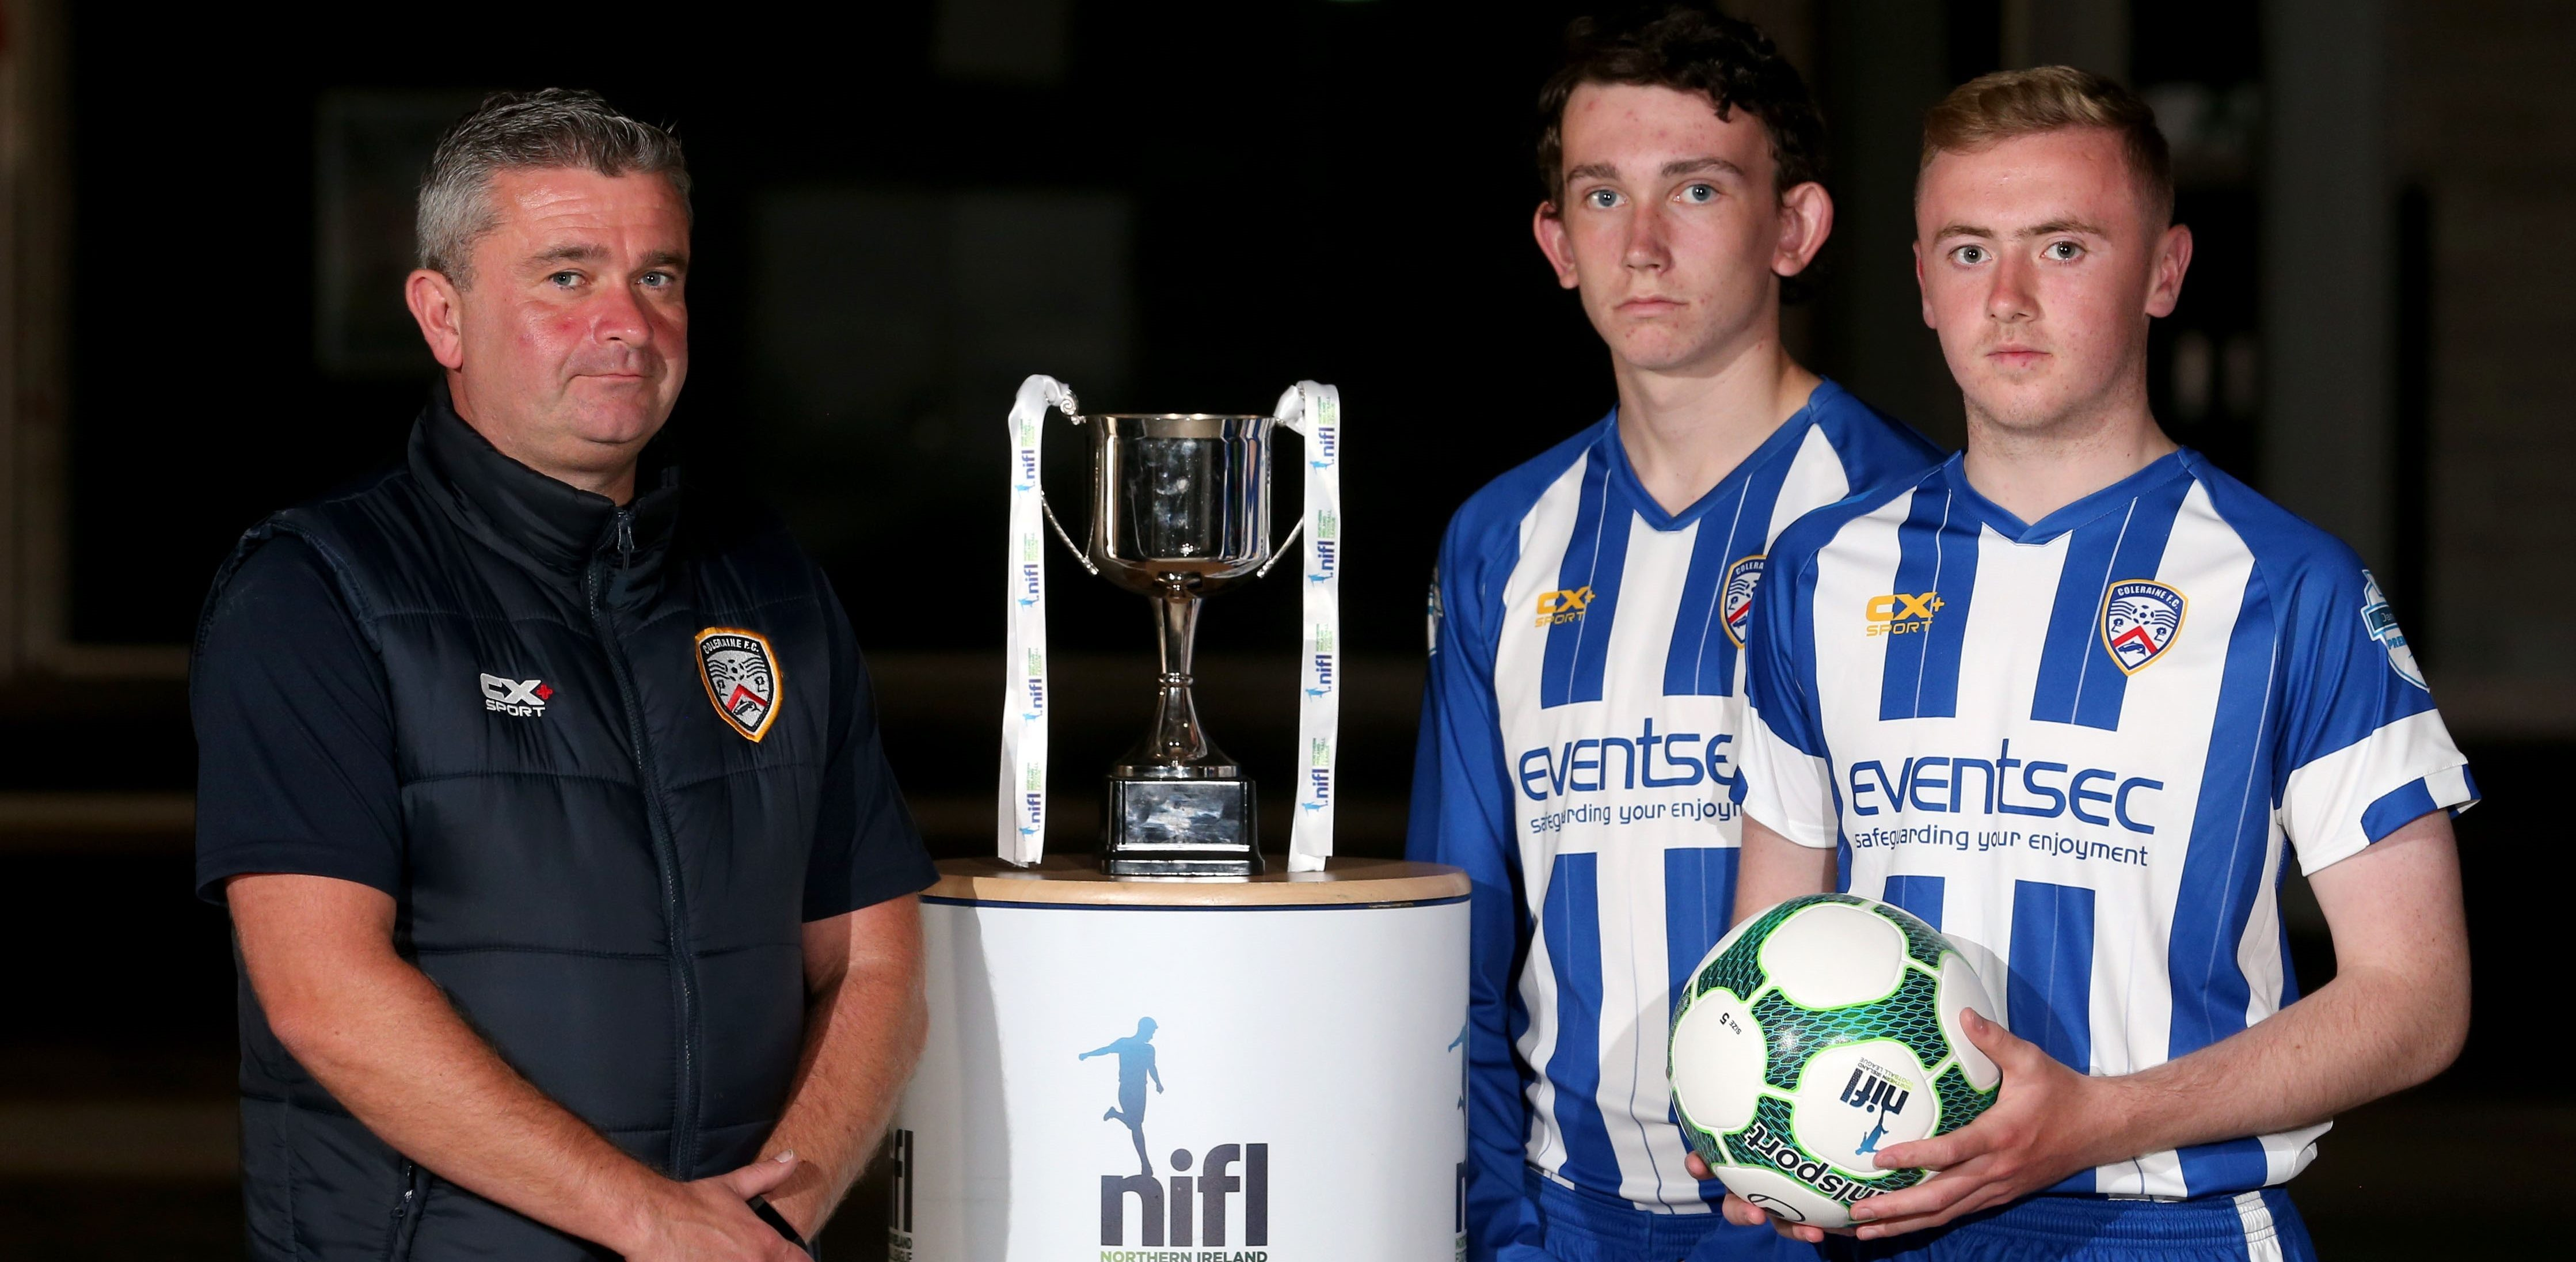 https://colerainefc.com/wp-content/uploads/2018/07/Coleraine-e1532618998287.jpg